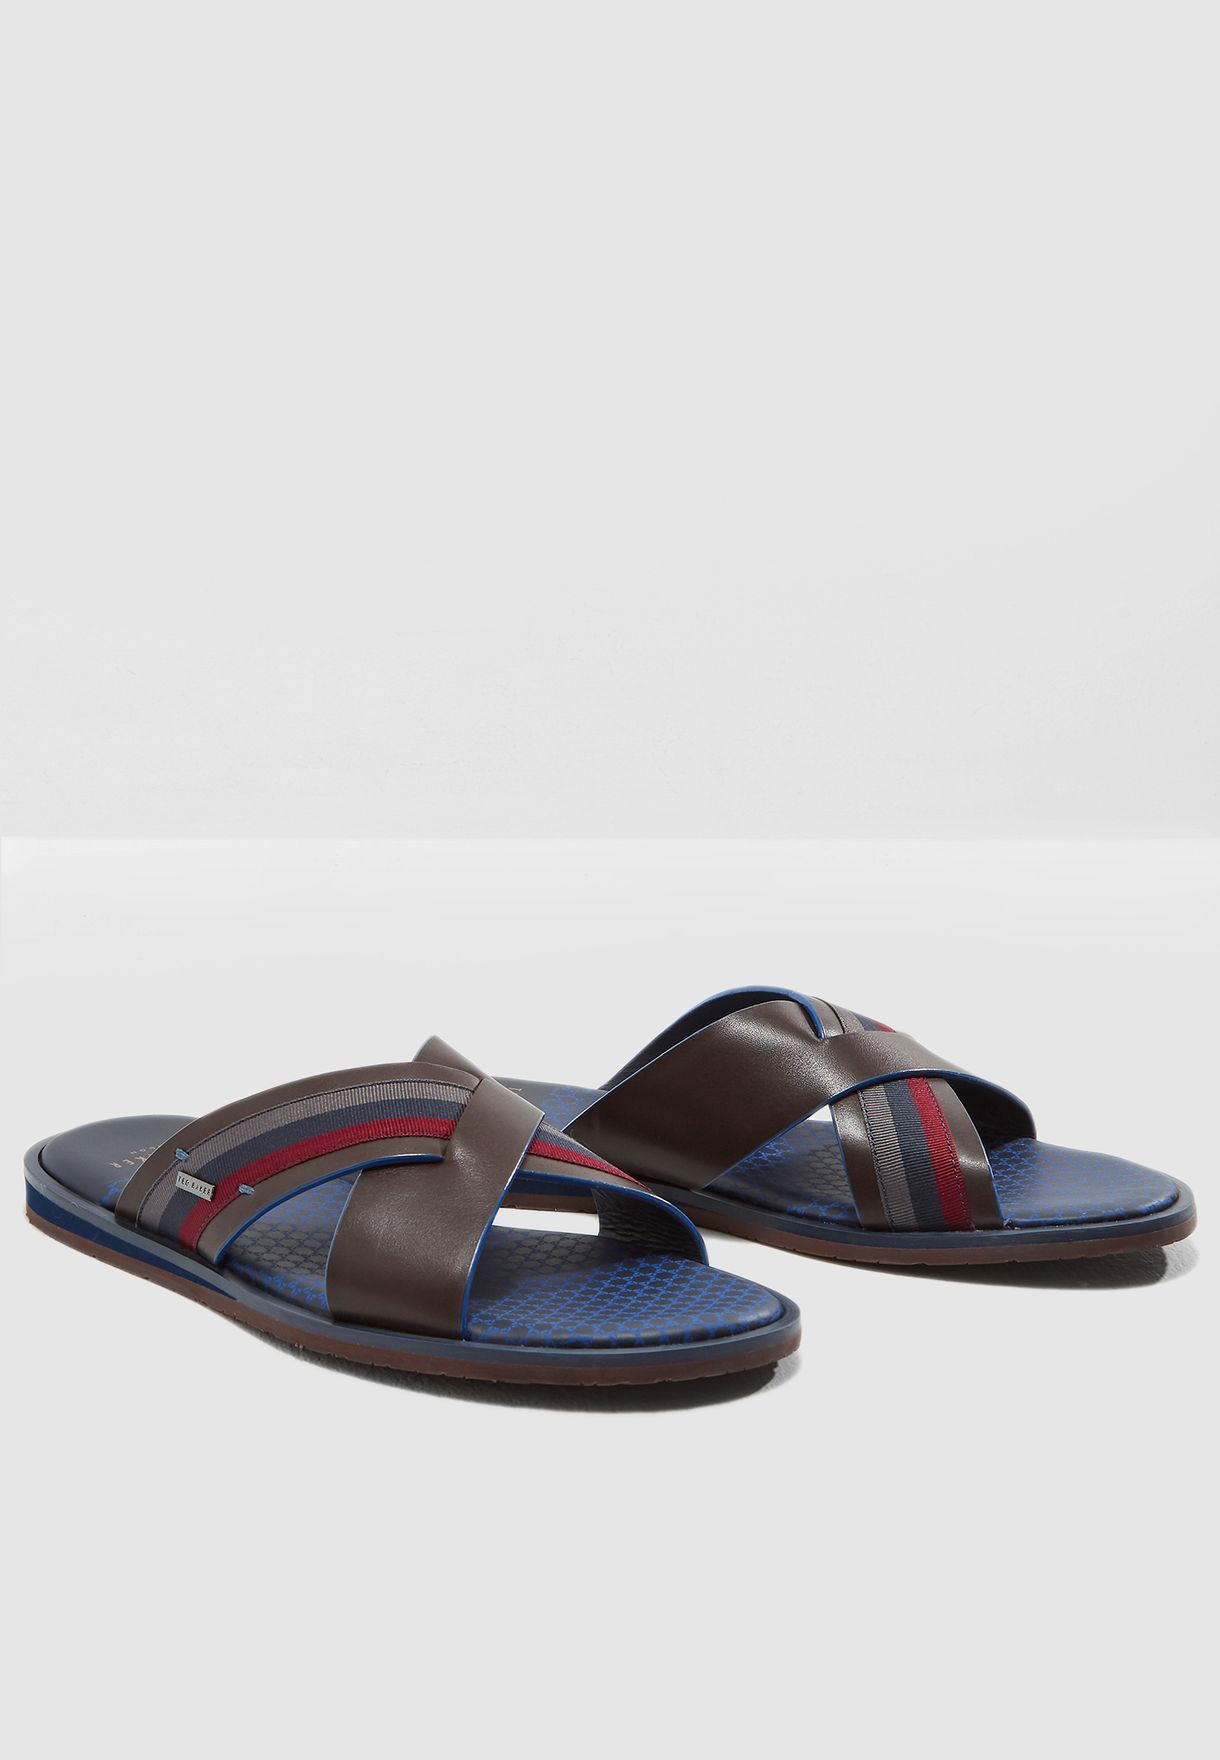 d48f739ad Shop Ted baker multicolor Farrull Sandals 917374 for Men in Kuwait -  TE456SH14DRP